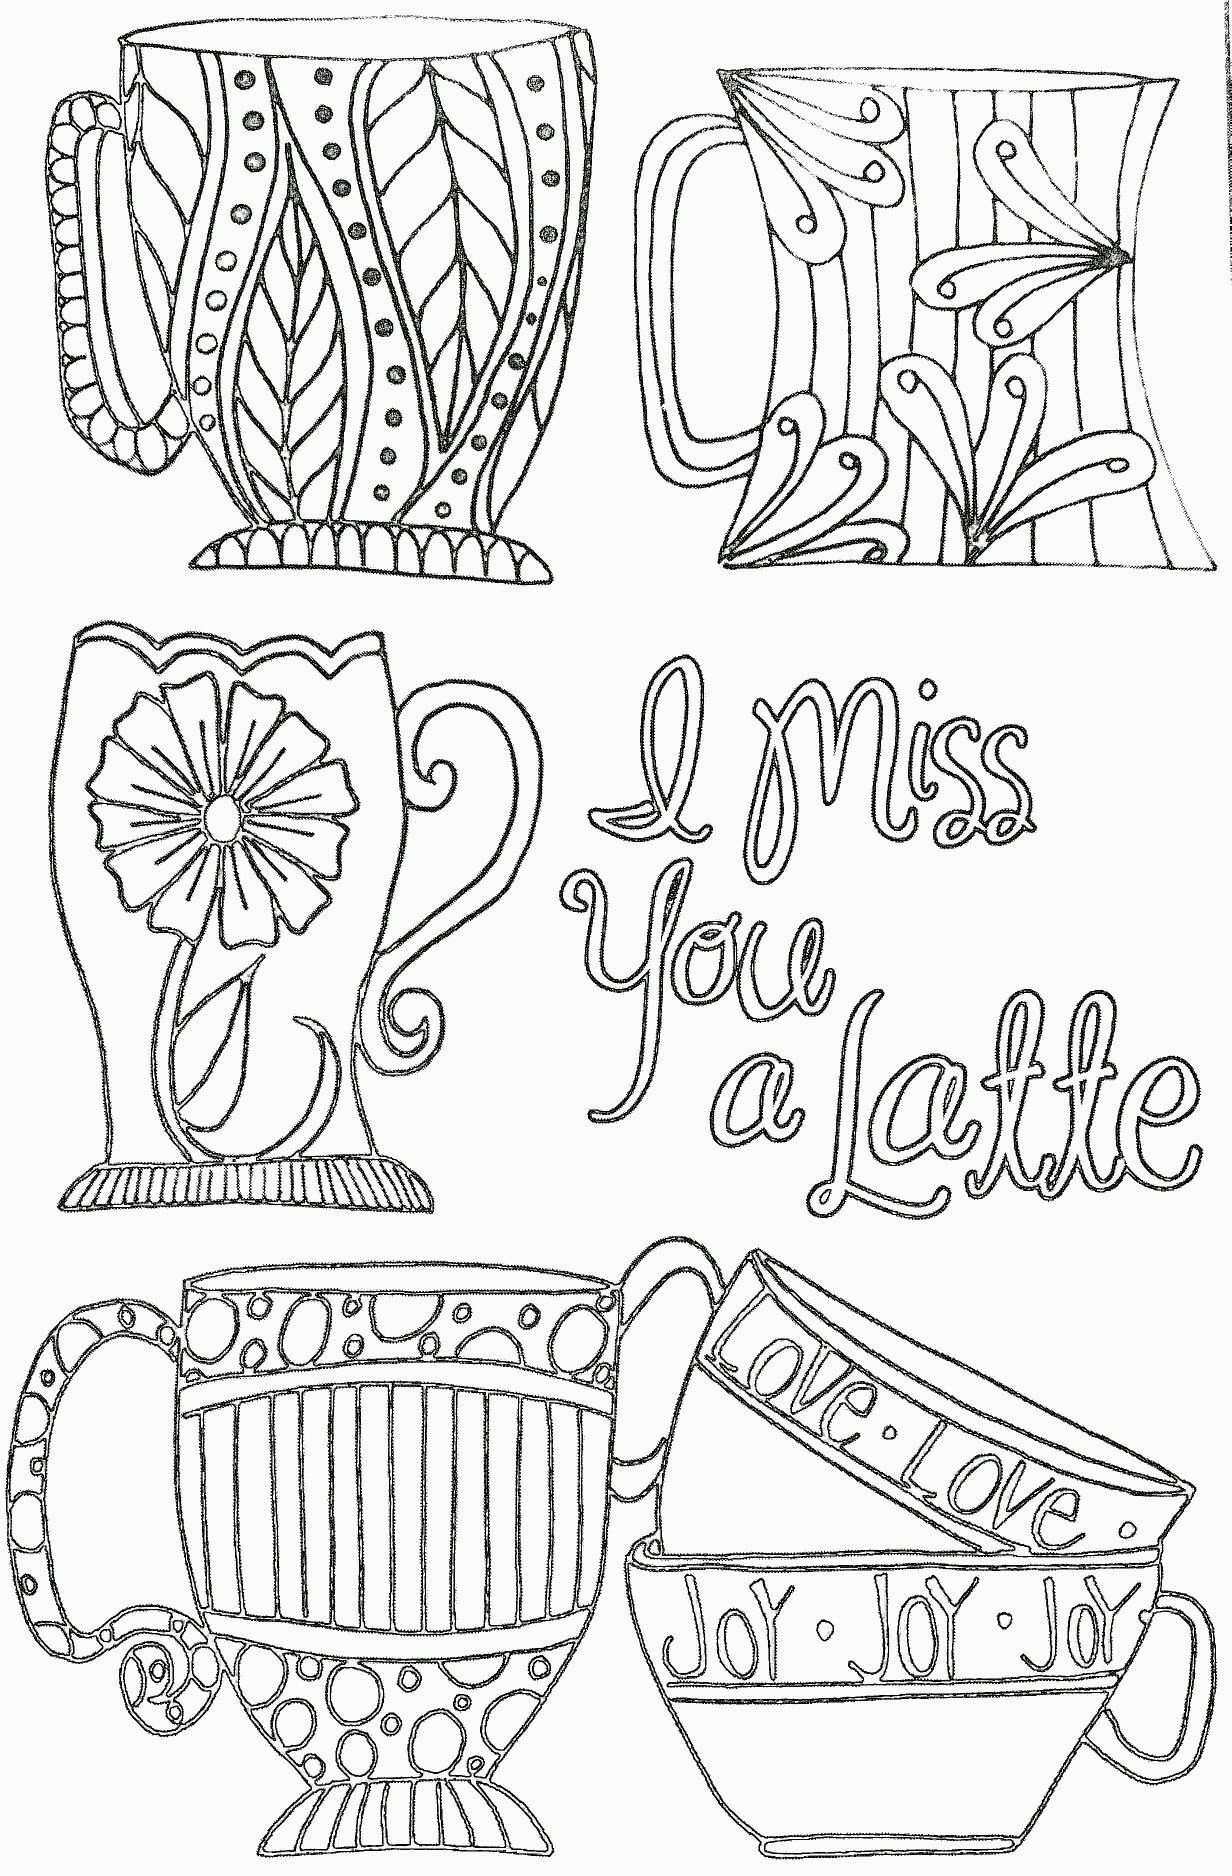 I Miss You A Latte Inkspirations Adult Coloring Page